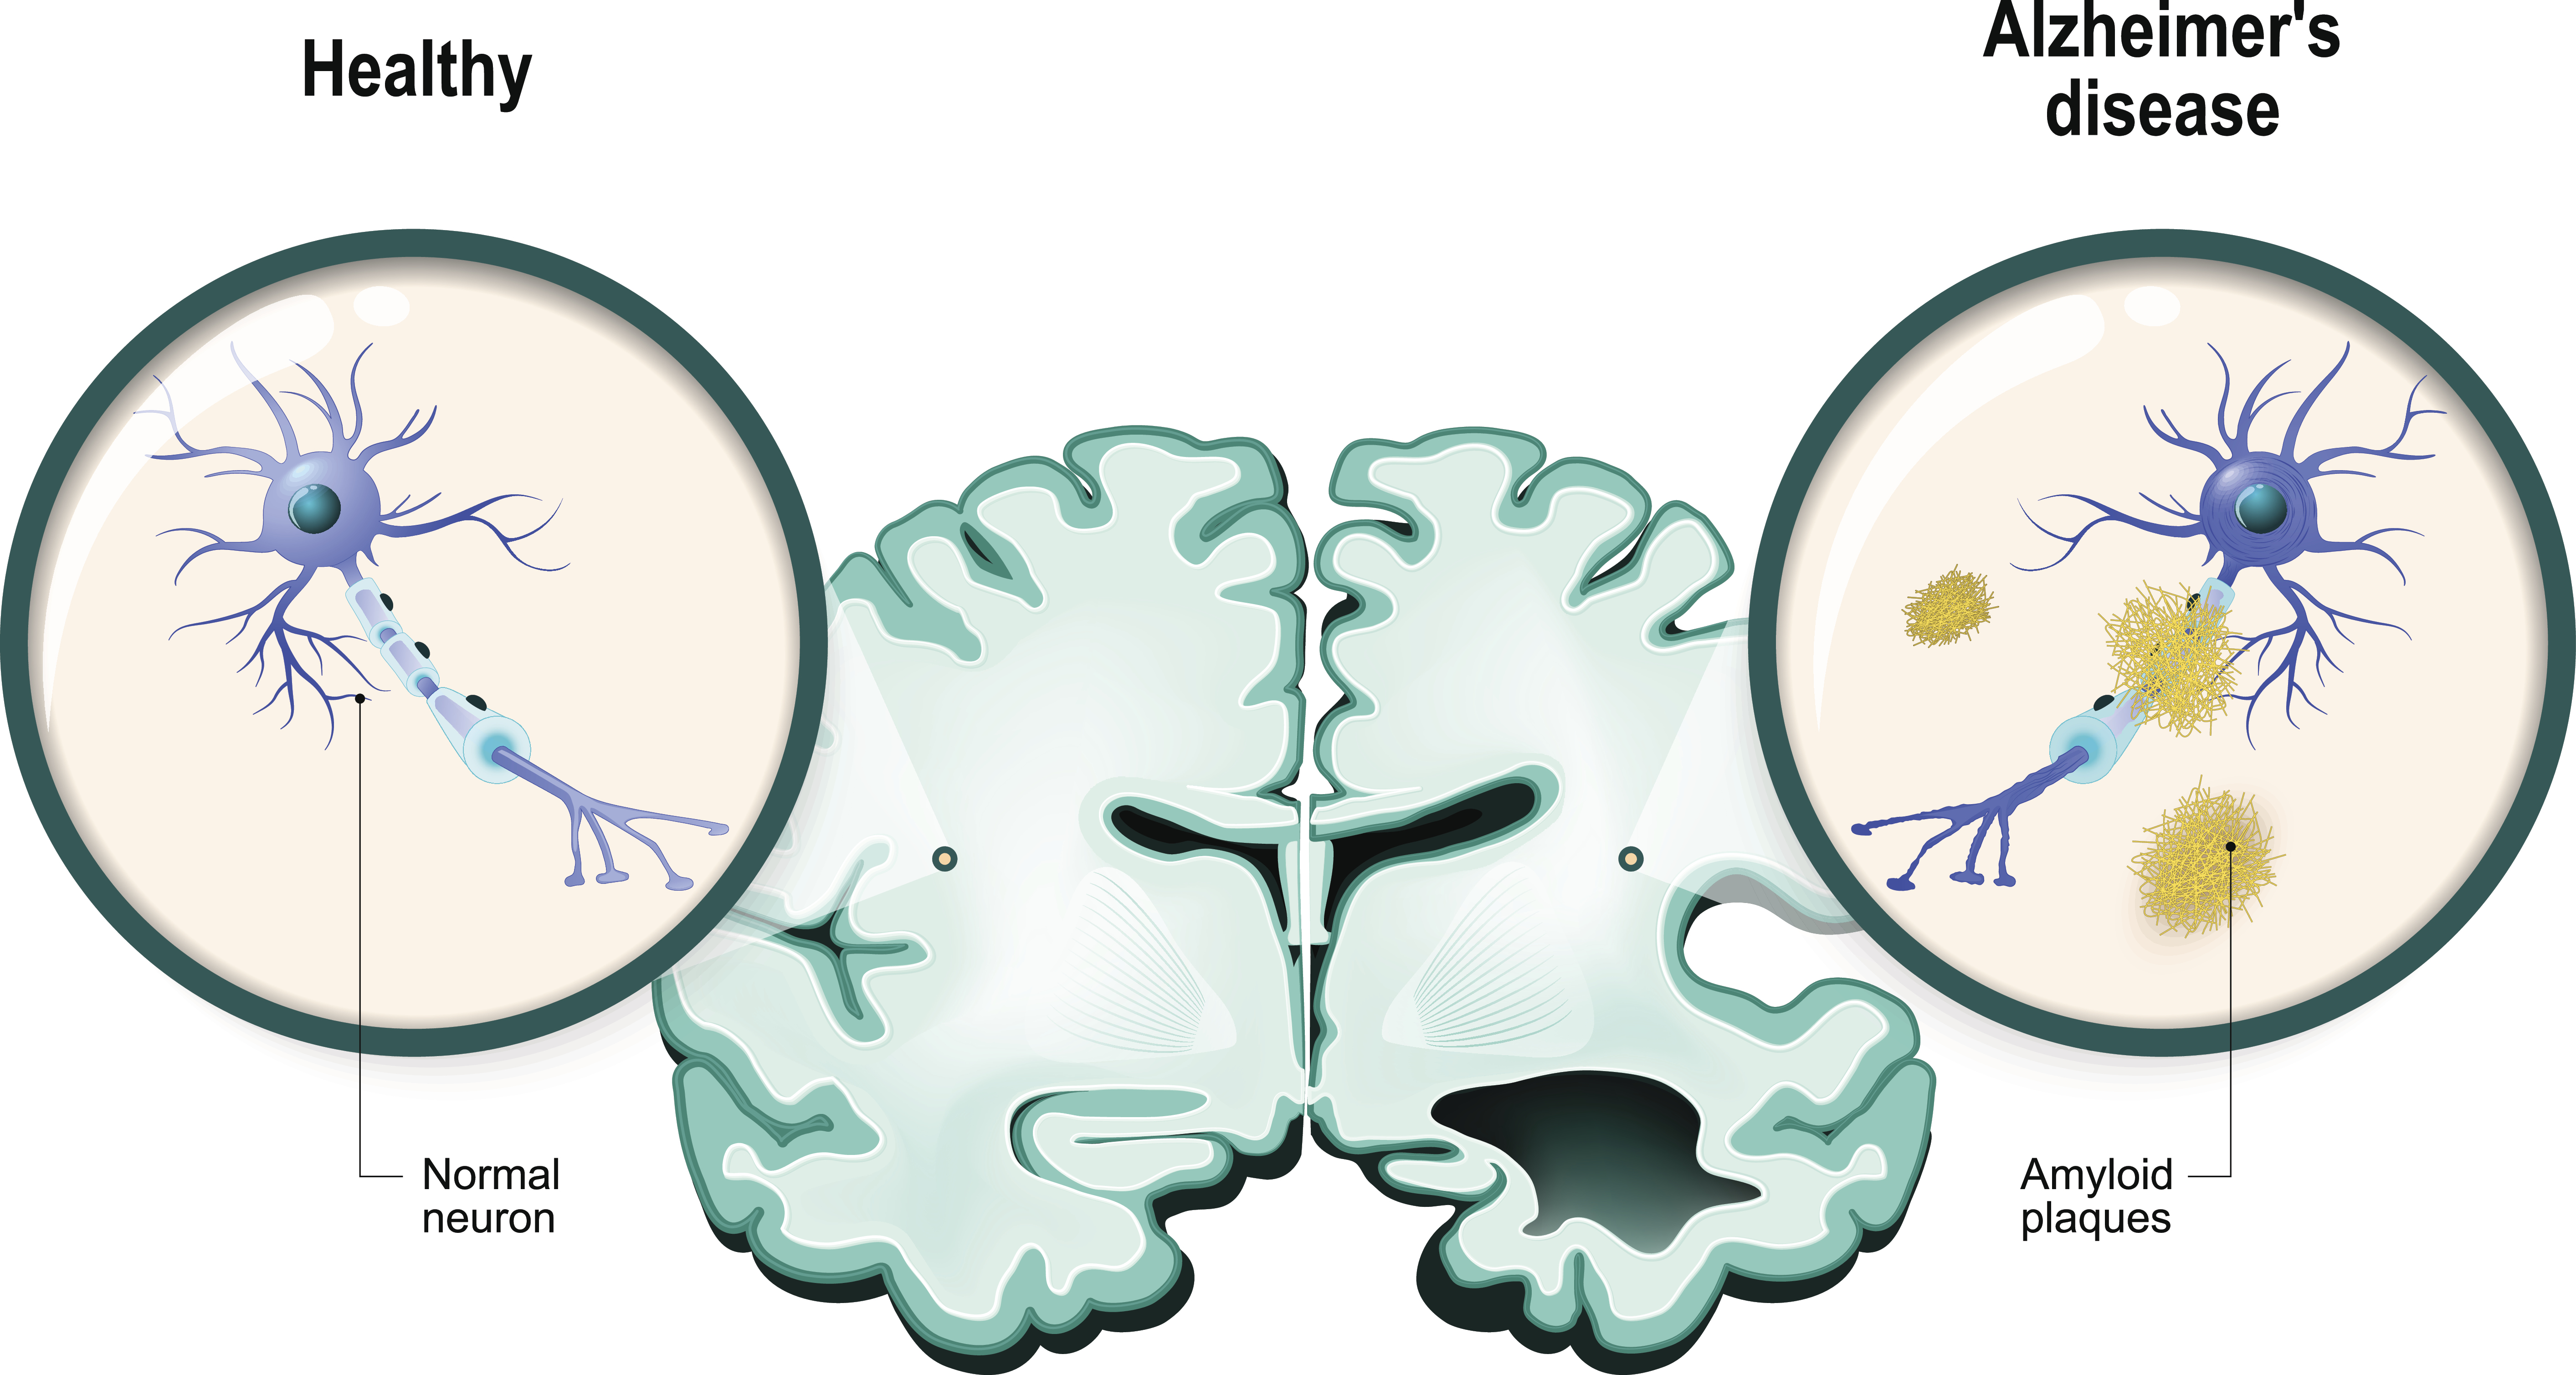 Medical Illustration of brain and neurons: Healthy vs. Alzheimer's disease